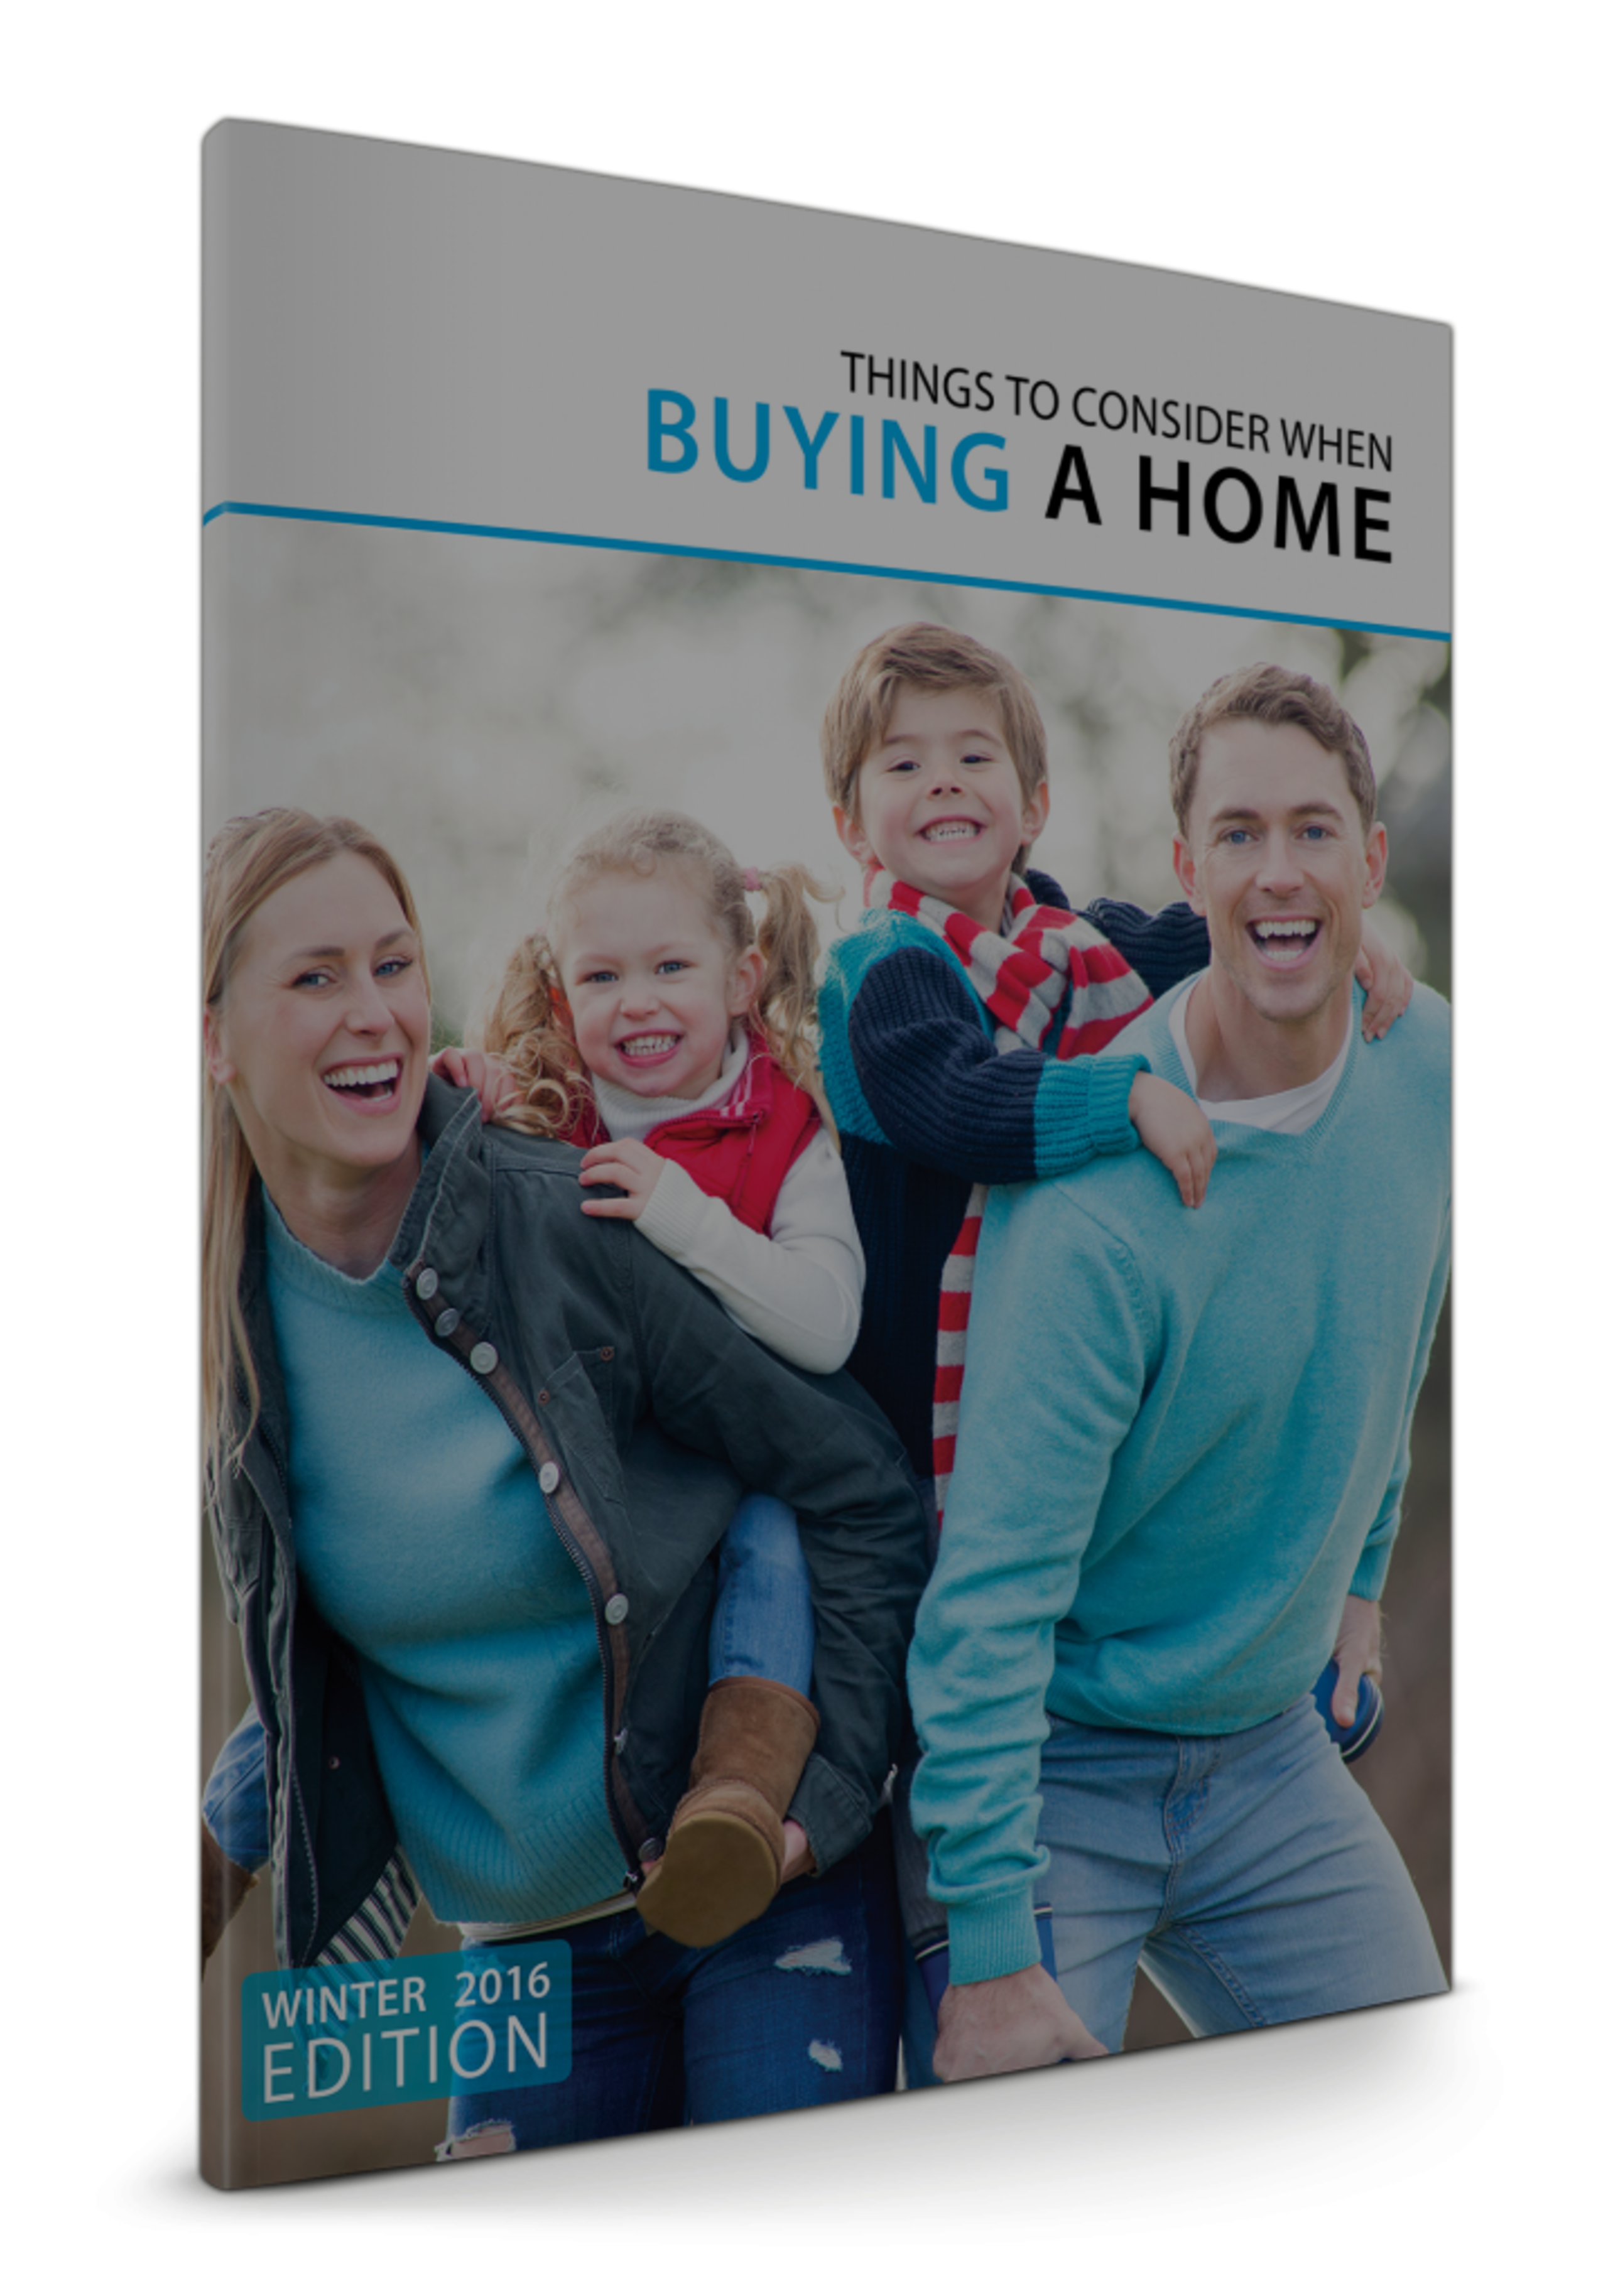 Are You Thinking About Buying a Home?